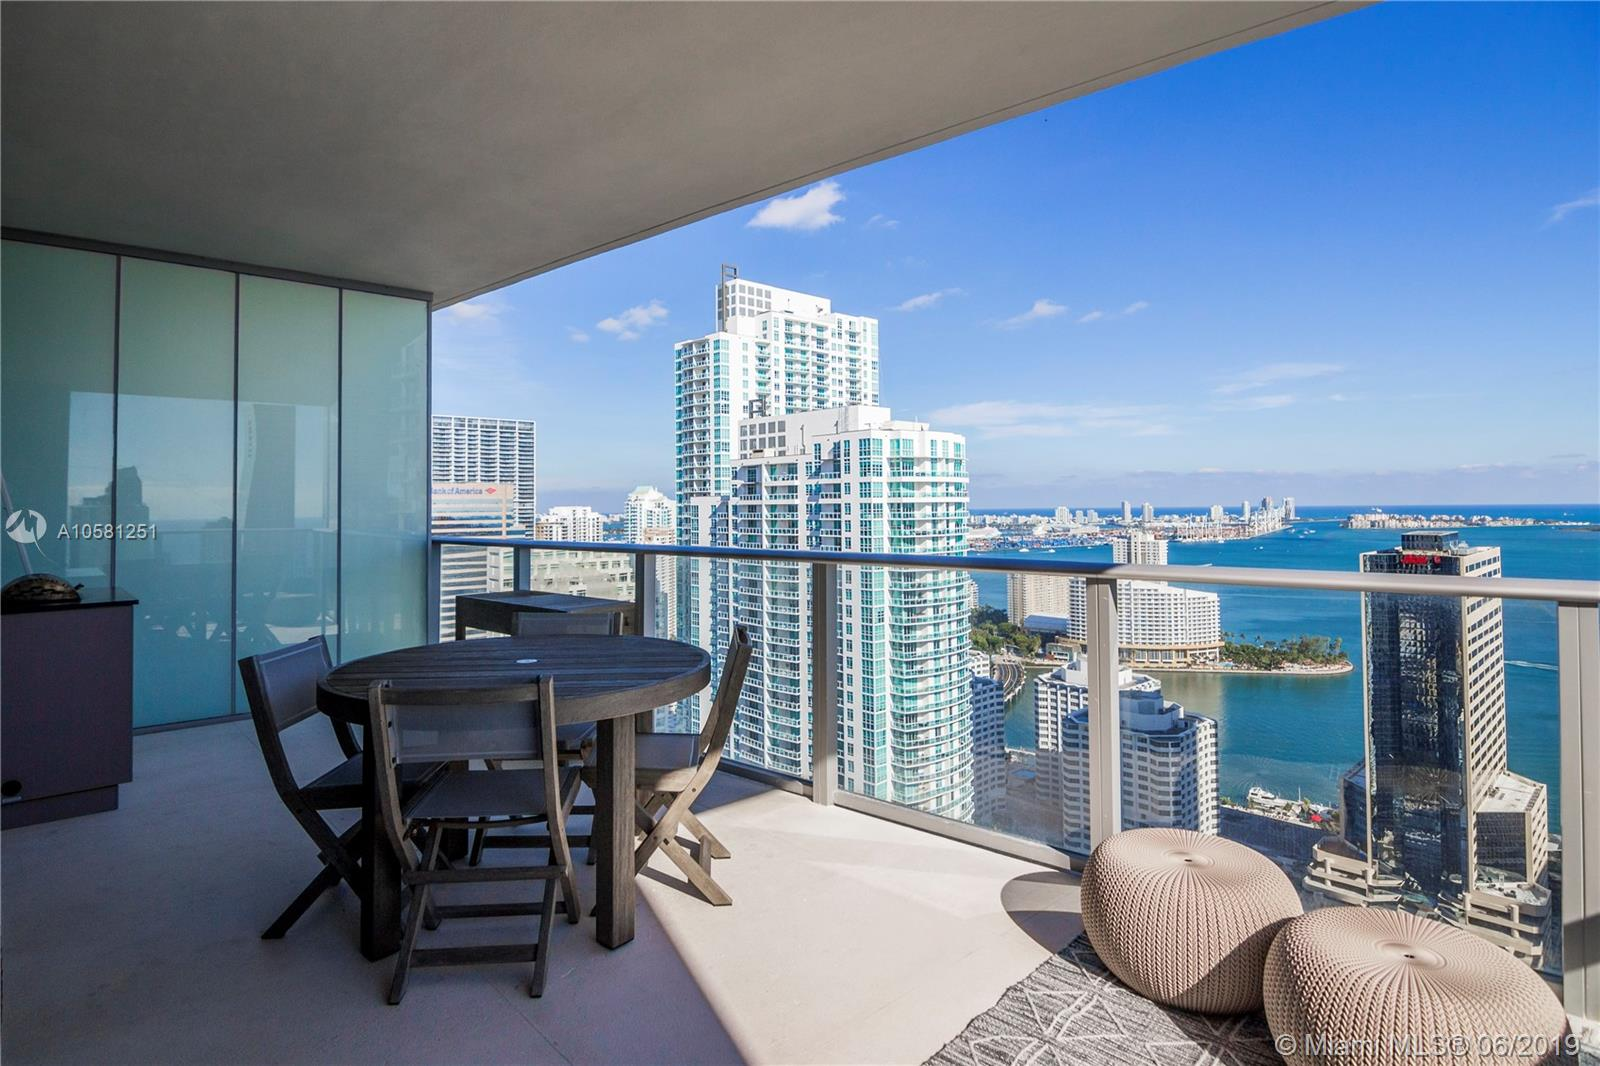 Enjoy breathtaking panoramic views of Biscayne Bay and Miami's skyline from this luxurious corner unit at the iconic 1010 Brickell condo. Unit features 3BD+Den/3BA, 1,778 sf, 48x24 Bianco Crystal Marble floors throughout, Chiseled Stone floors on balcony, European style kitchen, top of the line appliances, private elevator, 9 ft floor-to-ceiling windows, summer kitchen on balcony, 2 parking spaces & storage. Upgrades including white quartz kitchen counter-top, large kitchen sink, sliding-doors in master bath for privacy, lighting, and more. State of the art amenities: basketball and racquetball courts, bowling lanes & virtual golf, heated indoor pool, rooftop pool with restaurant/bar & BBQ area, gym, aerobics room, spa, sauna, steam room, kids indoor playroom, running track...